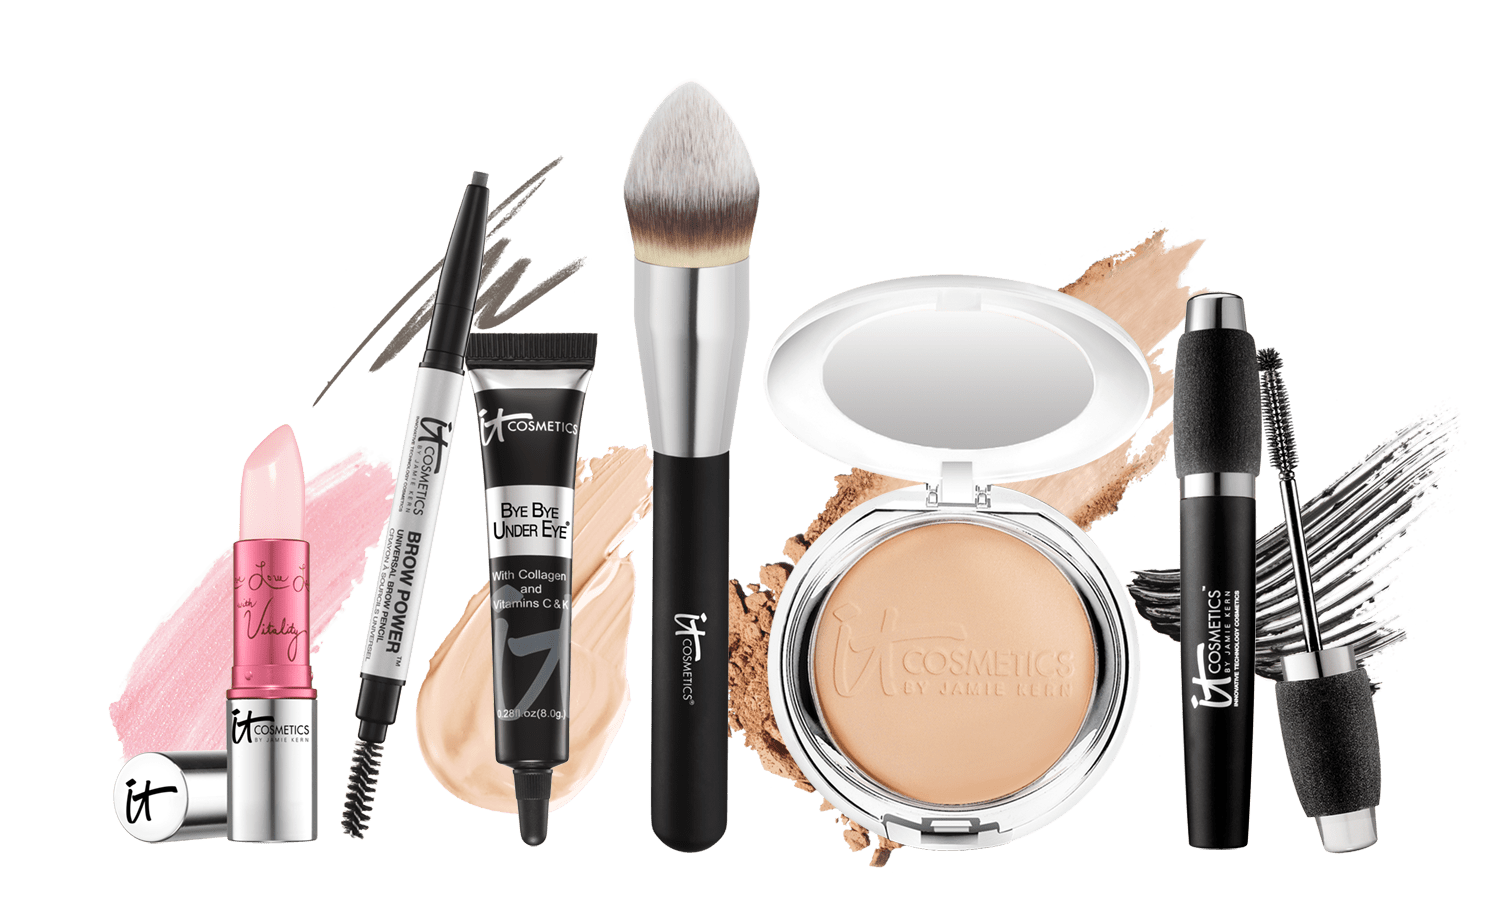 It Cosmetics Makeup Kit - Makeup Kit Products Clipart